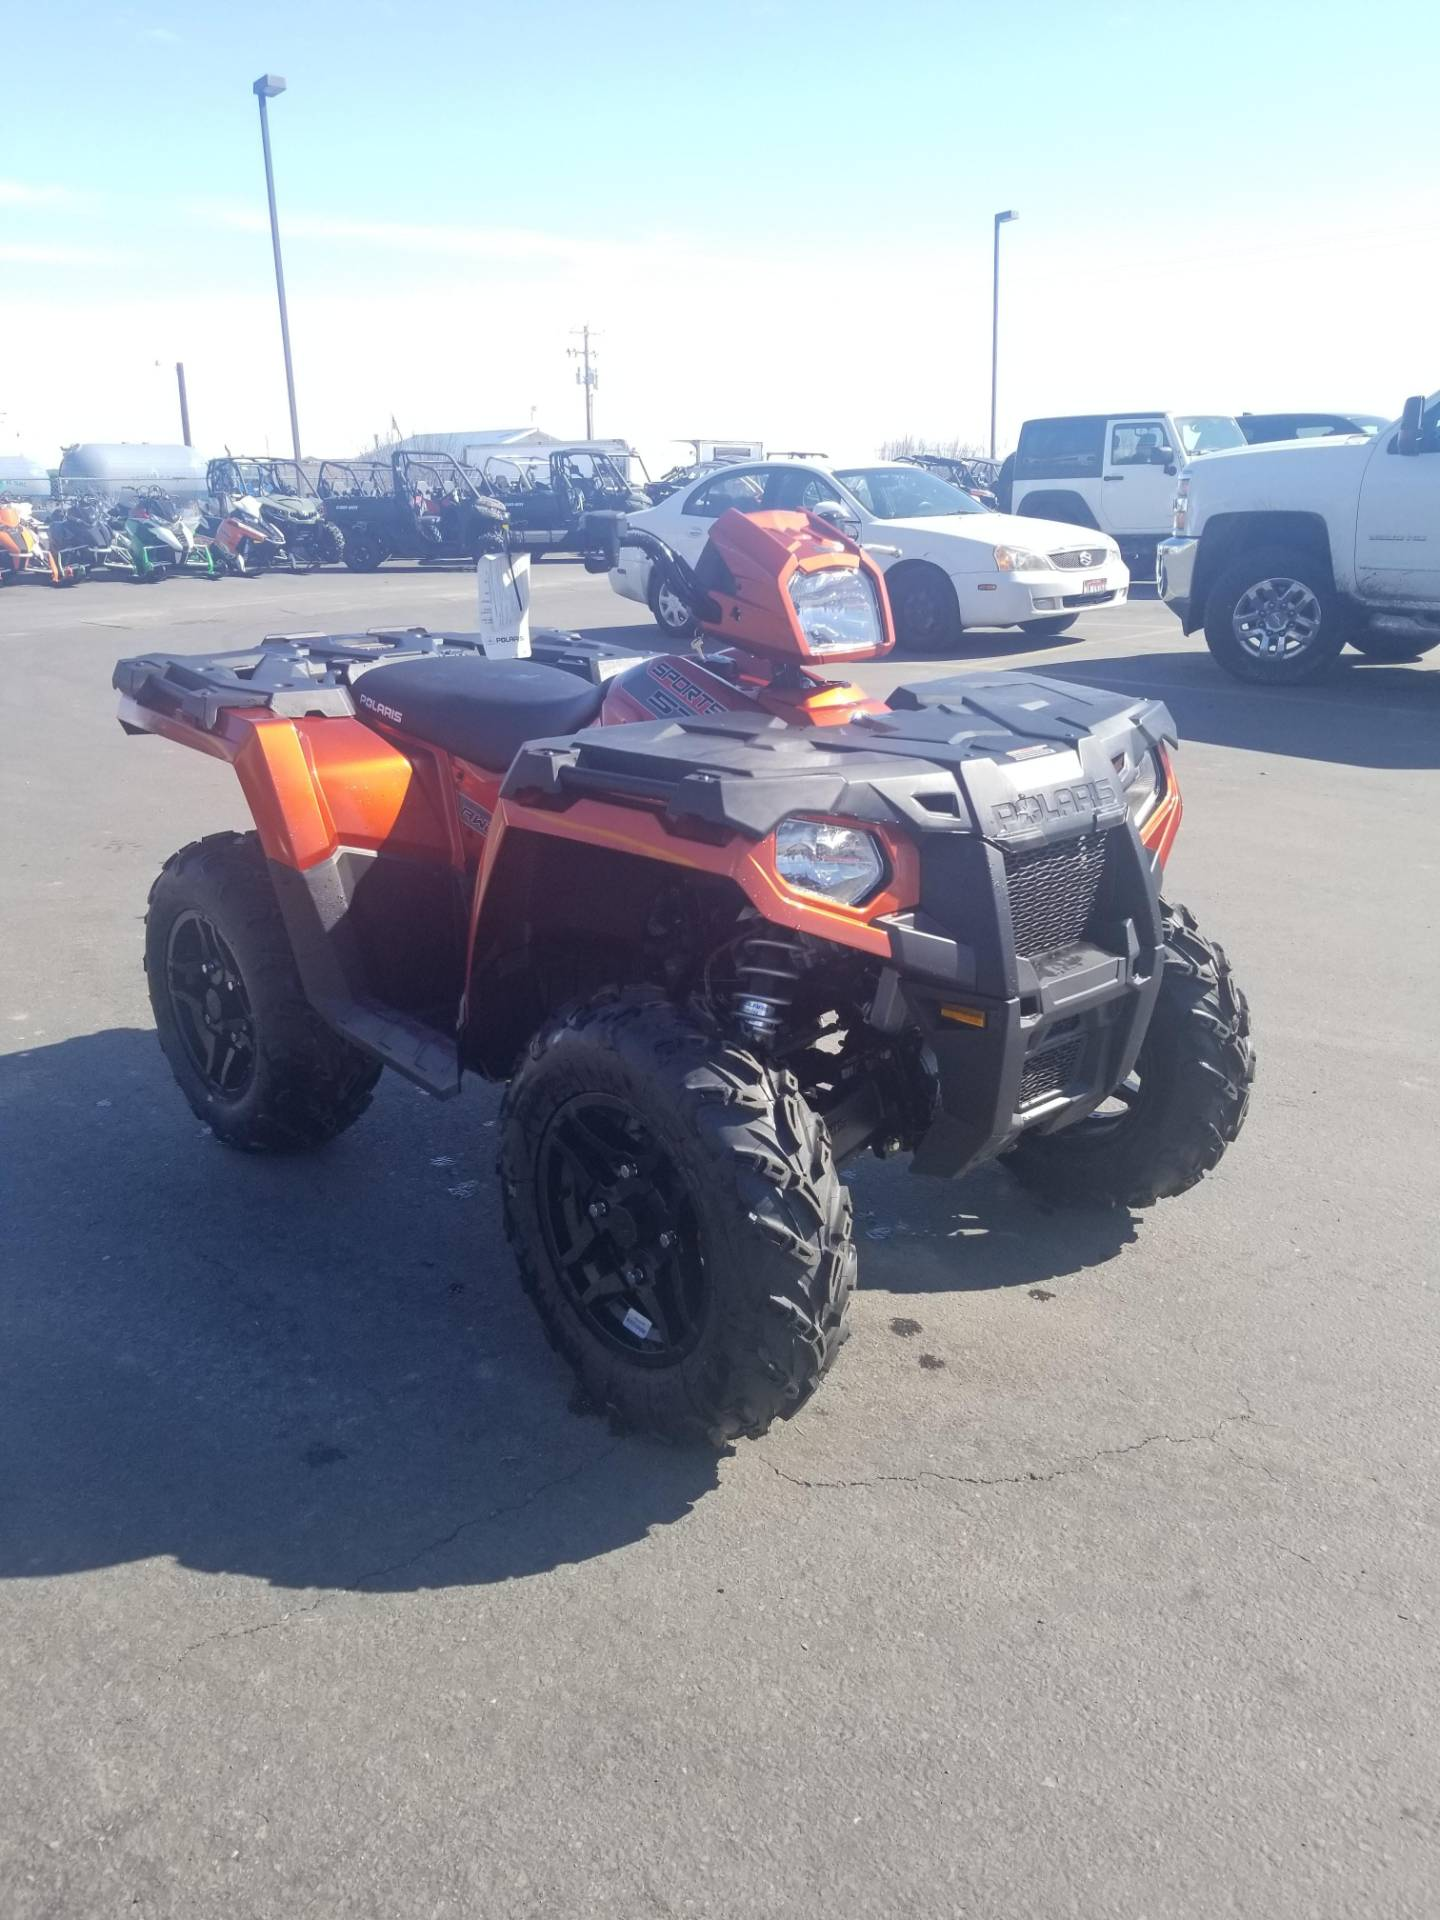 2020 Polaris Sportsman 570 Premium in Rexburg, Idaho - Photo 5